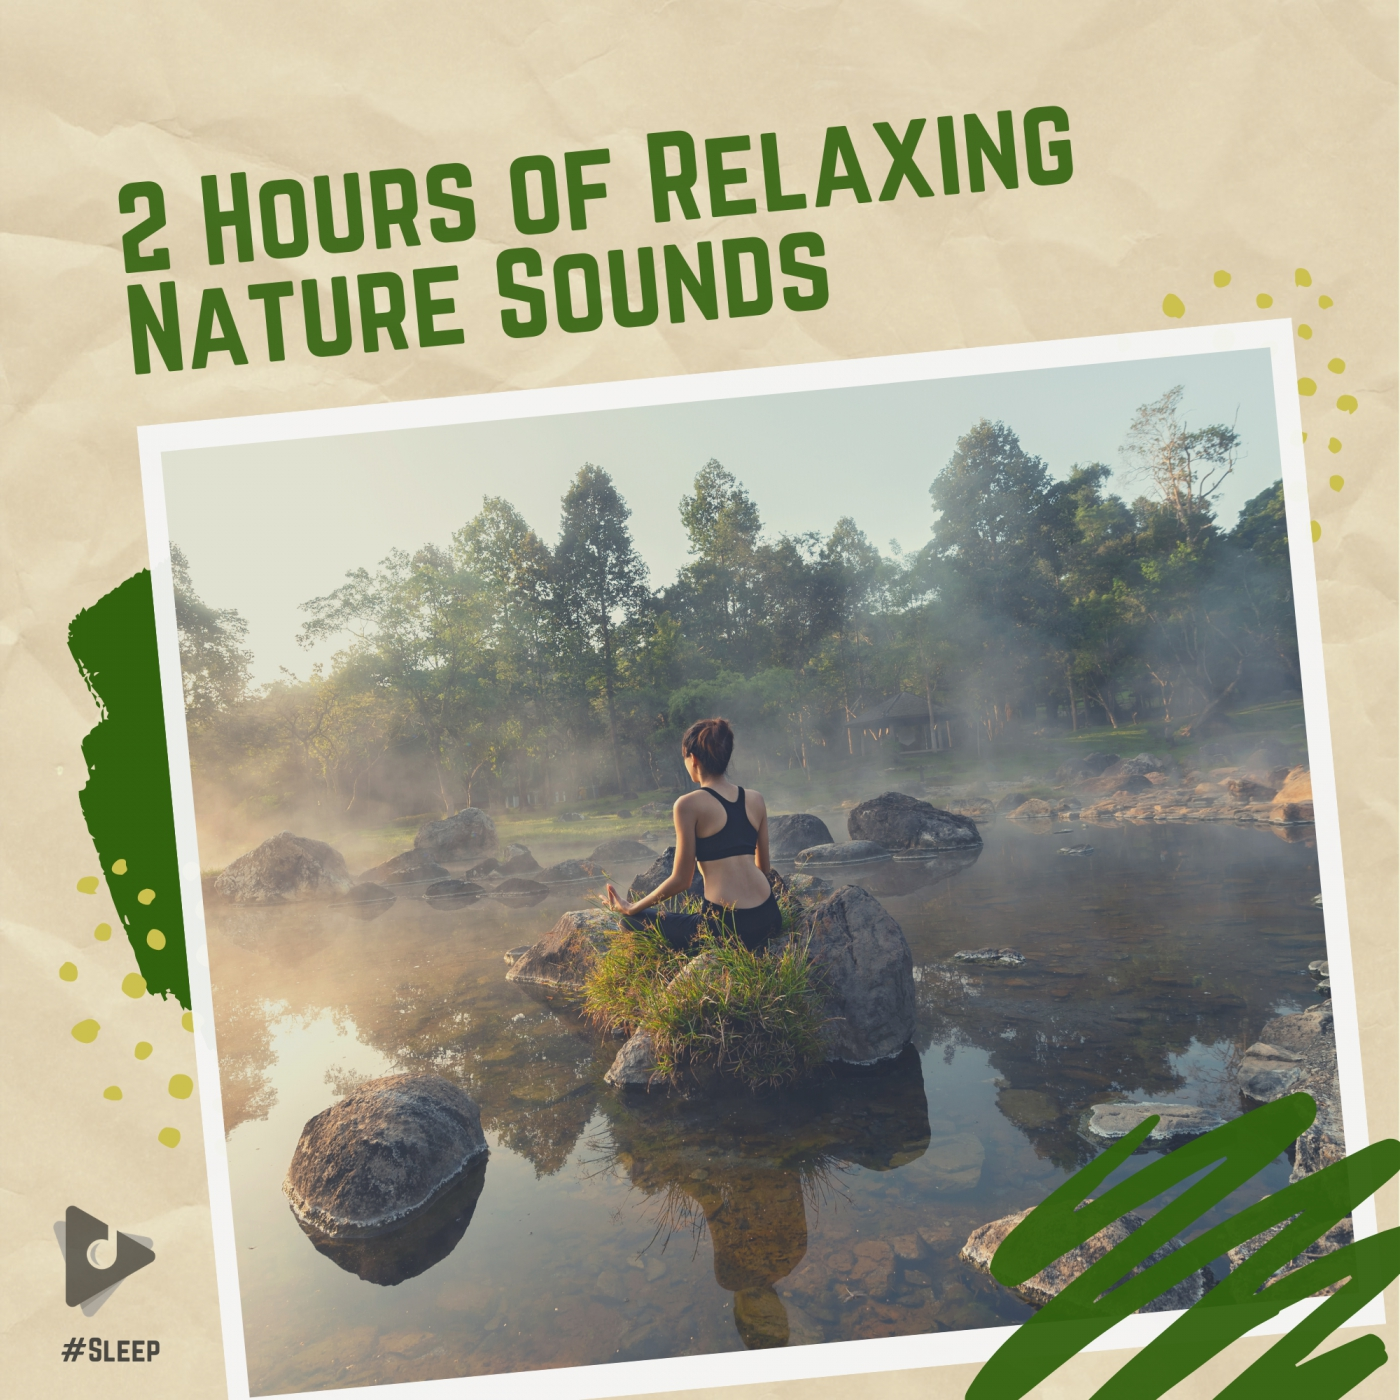 2 Hours of Relaxing Nature Sounds